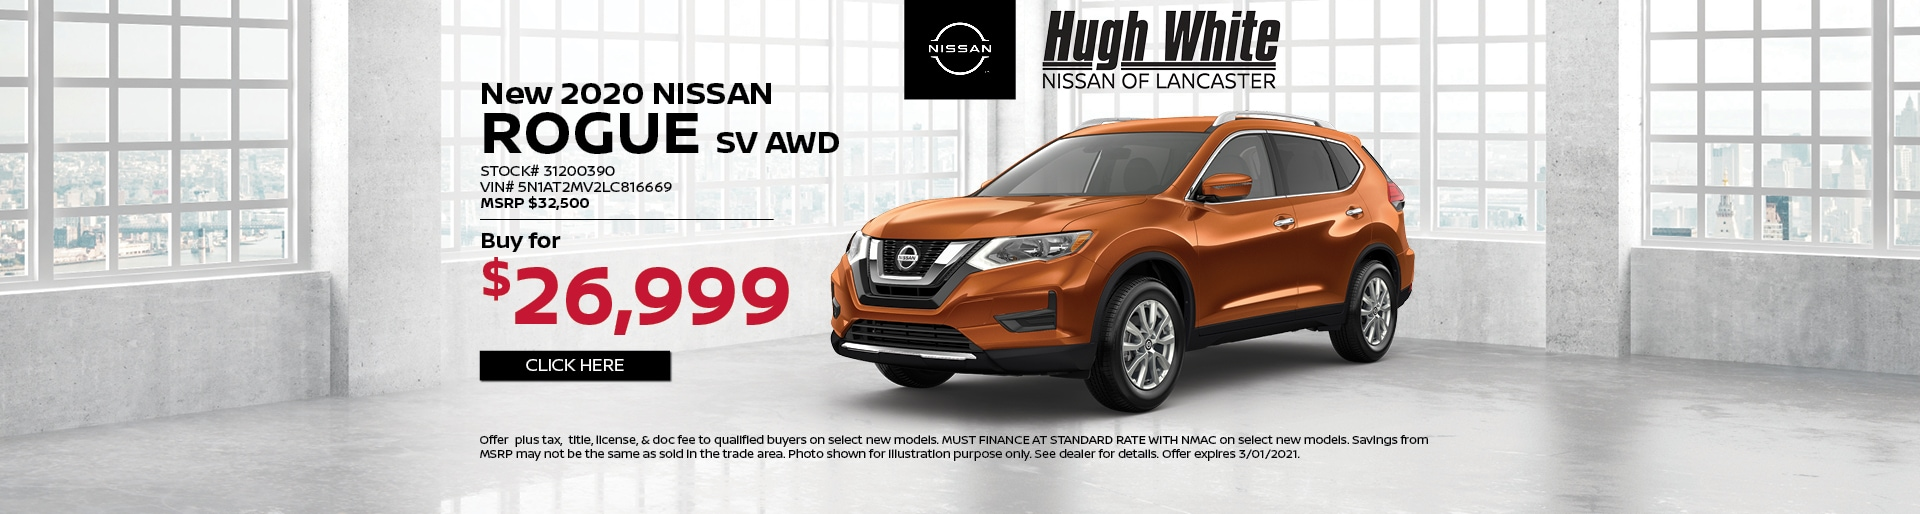 2020 Nissan Rogue Special Offer | Hugh White Nissan Lancaster, OH